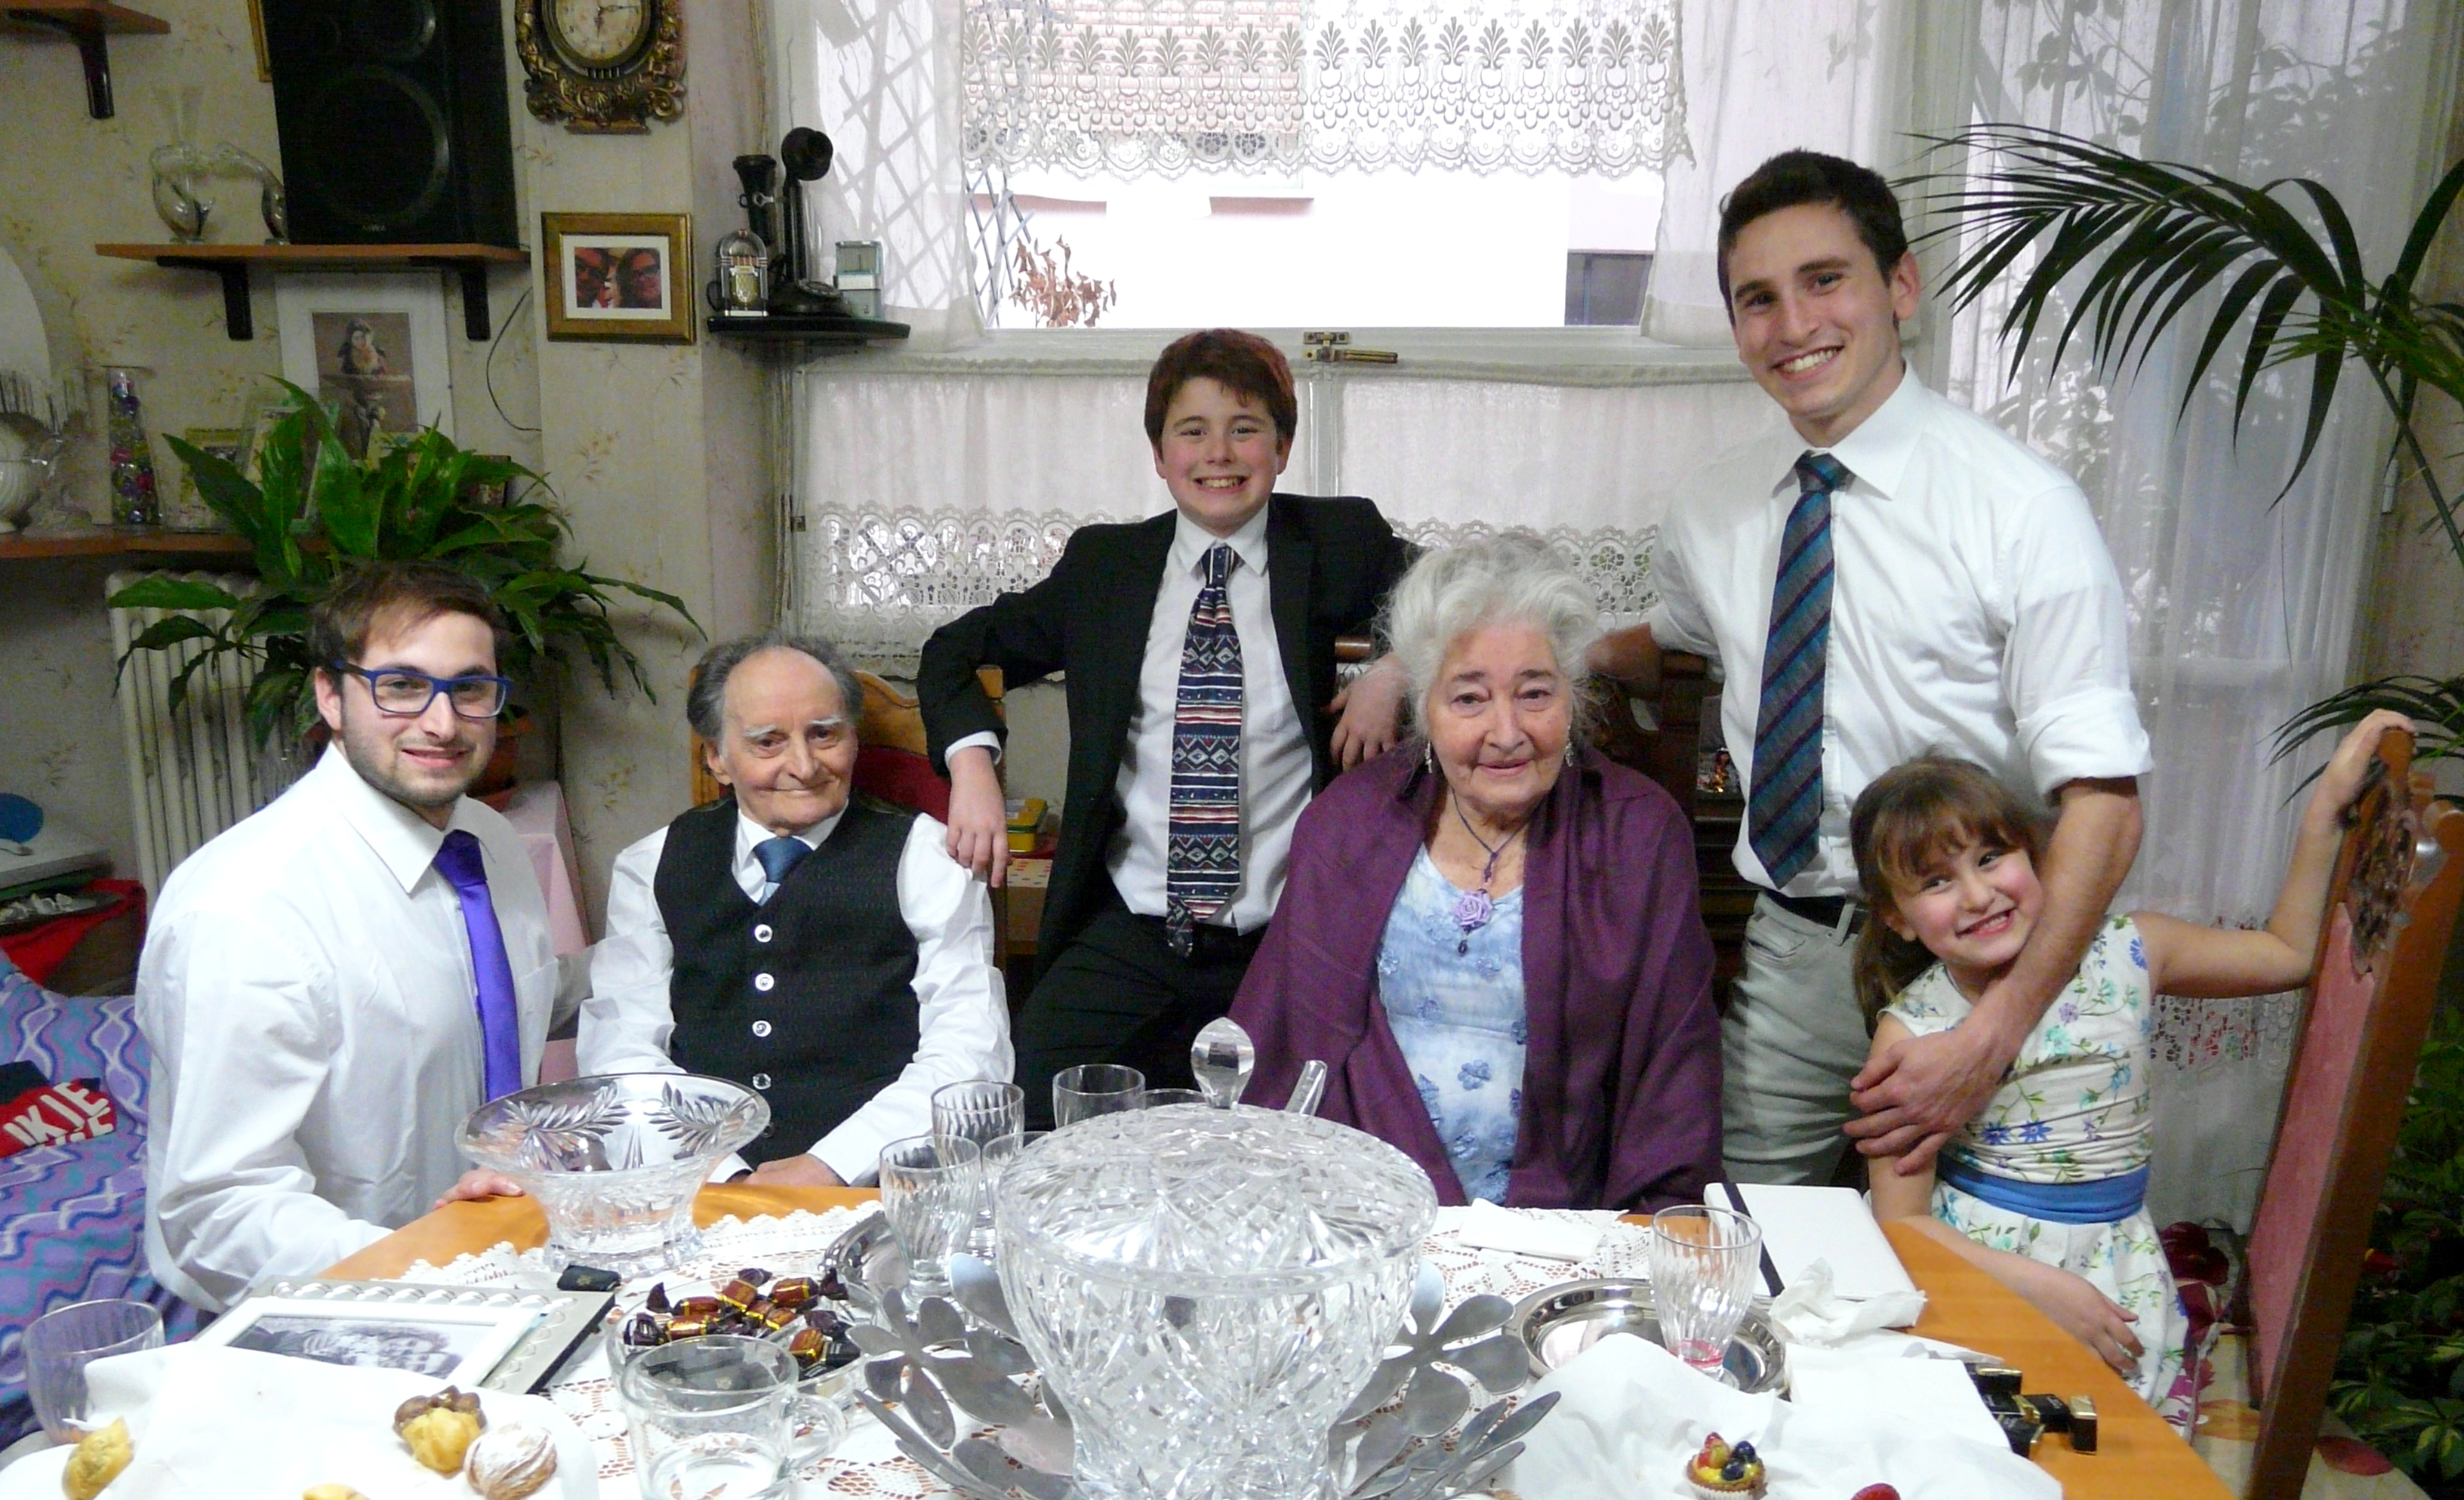 Agostino and Pierina Vardeu are surrounded by some of their grandchildren. The two older boys pictured have served full-time missions.